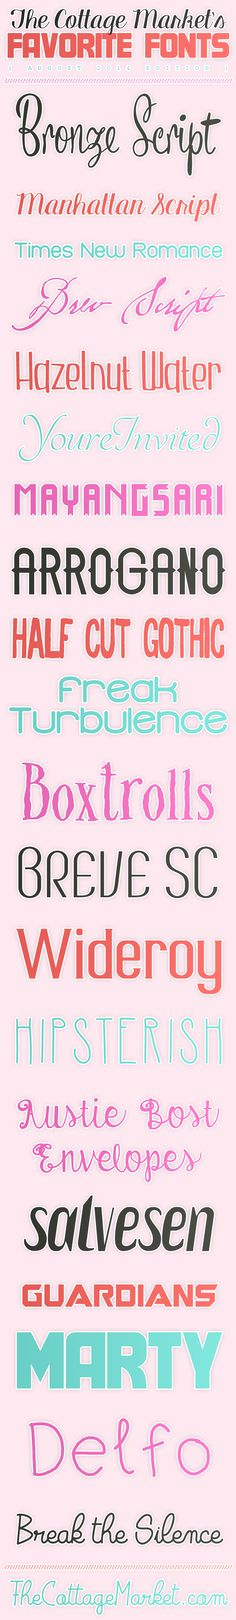 Free Fonts The Cottage Market August 2014 Favorites - The Cottage Market #FreeFonts, #FreeFontCollection, #FunFreeFonts